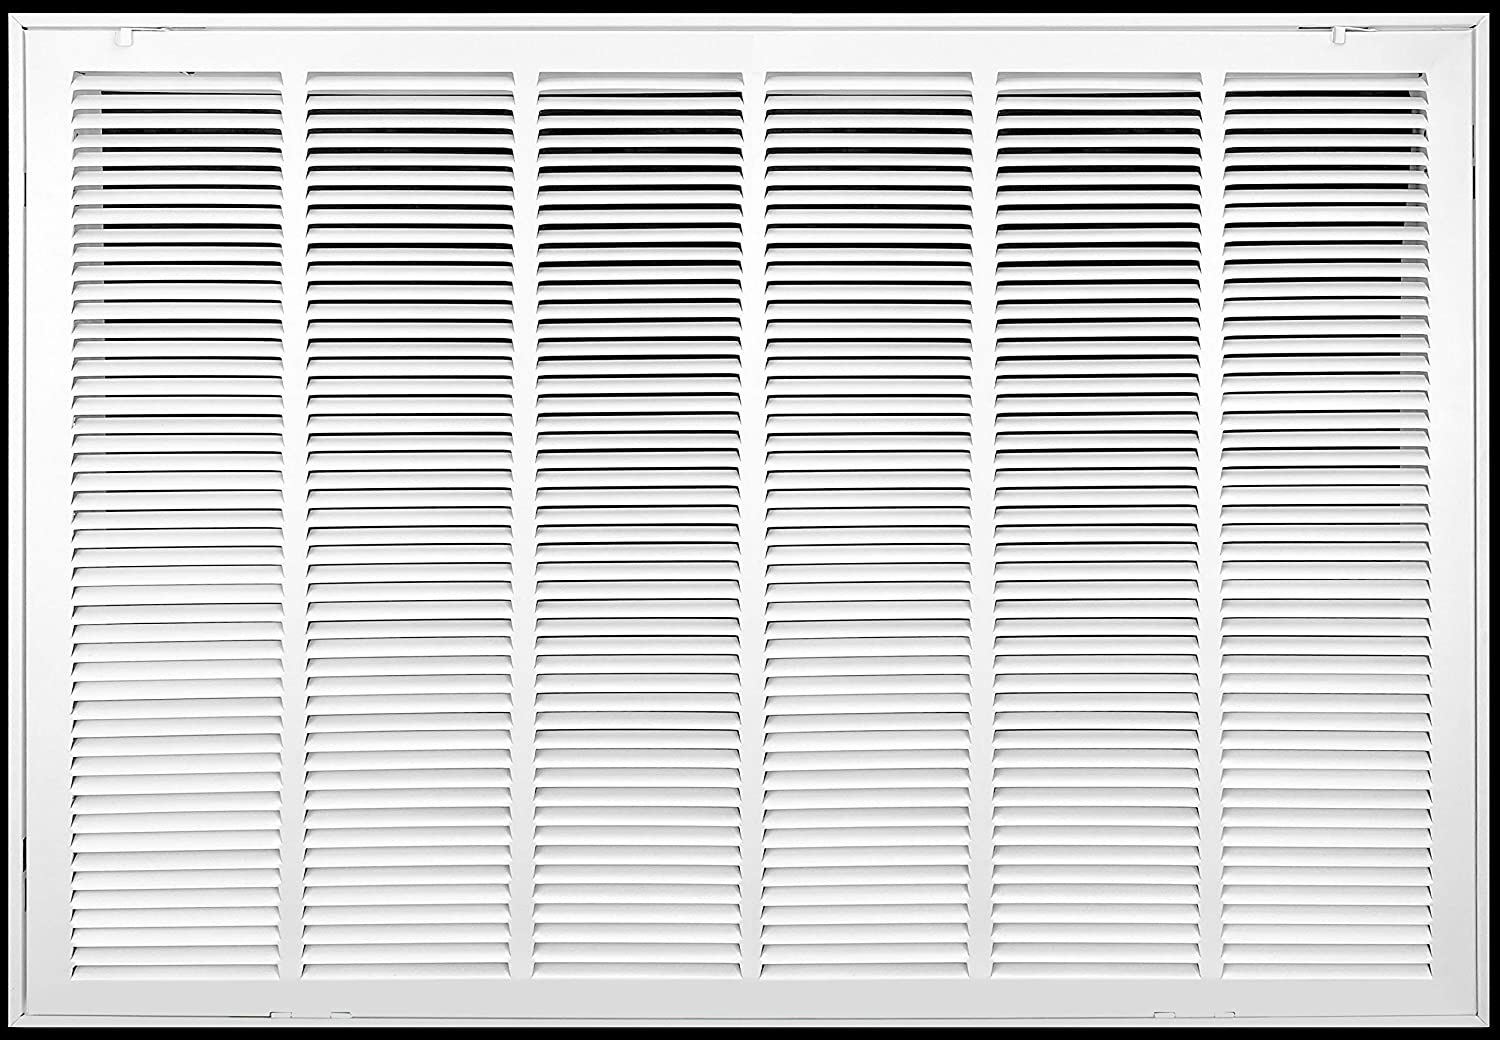 """30"""" X 20"""" Steel Return Air Filter Grille [Fixed Hinged] for 1-inch Filters 